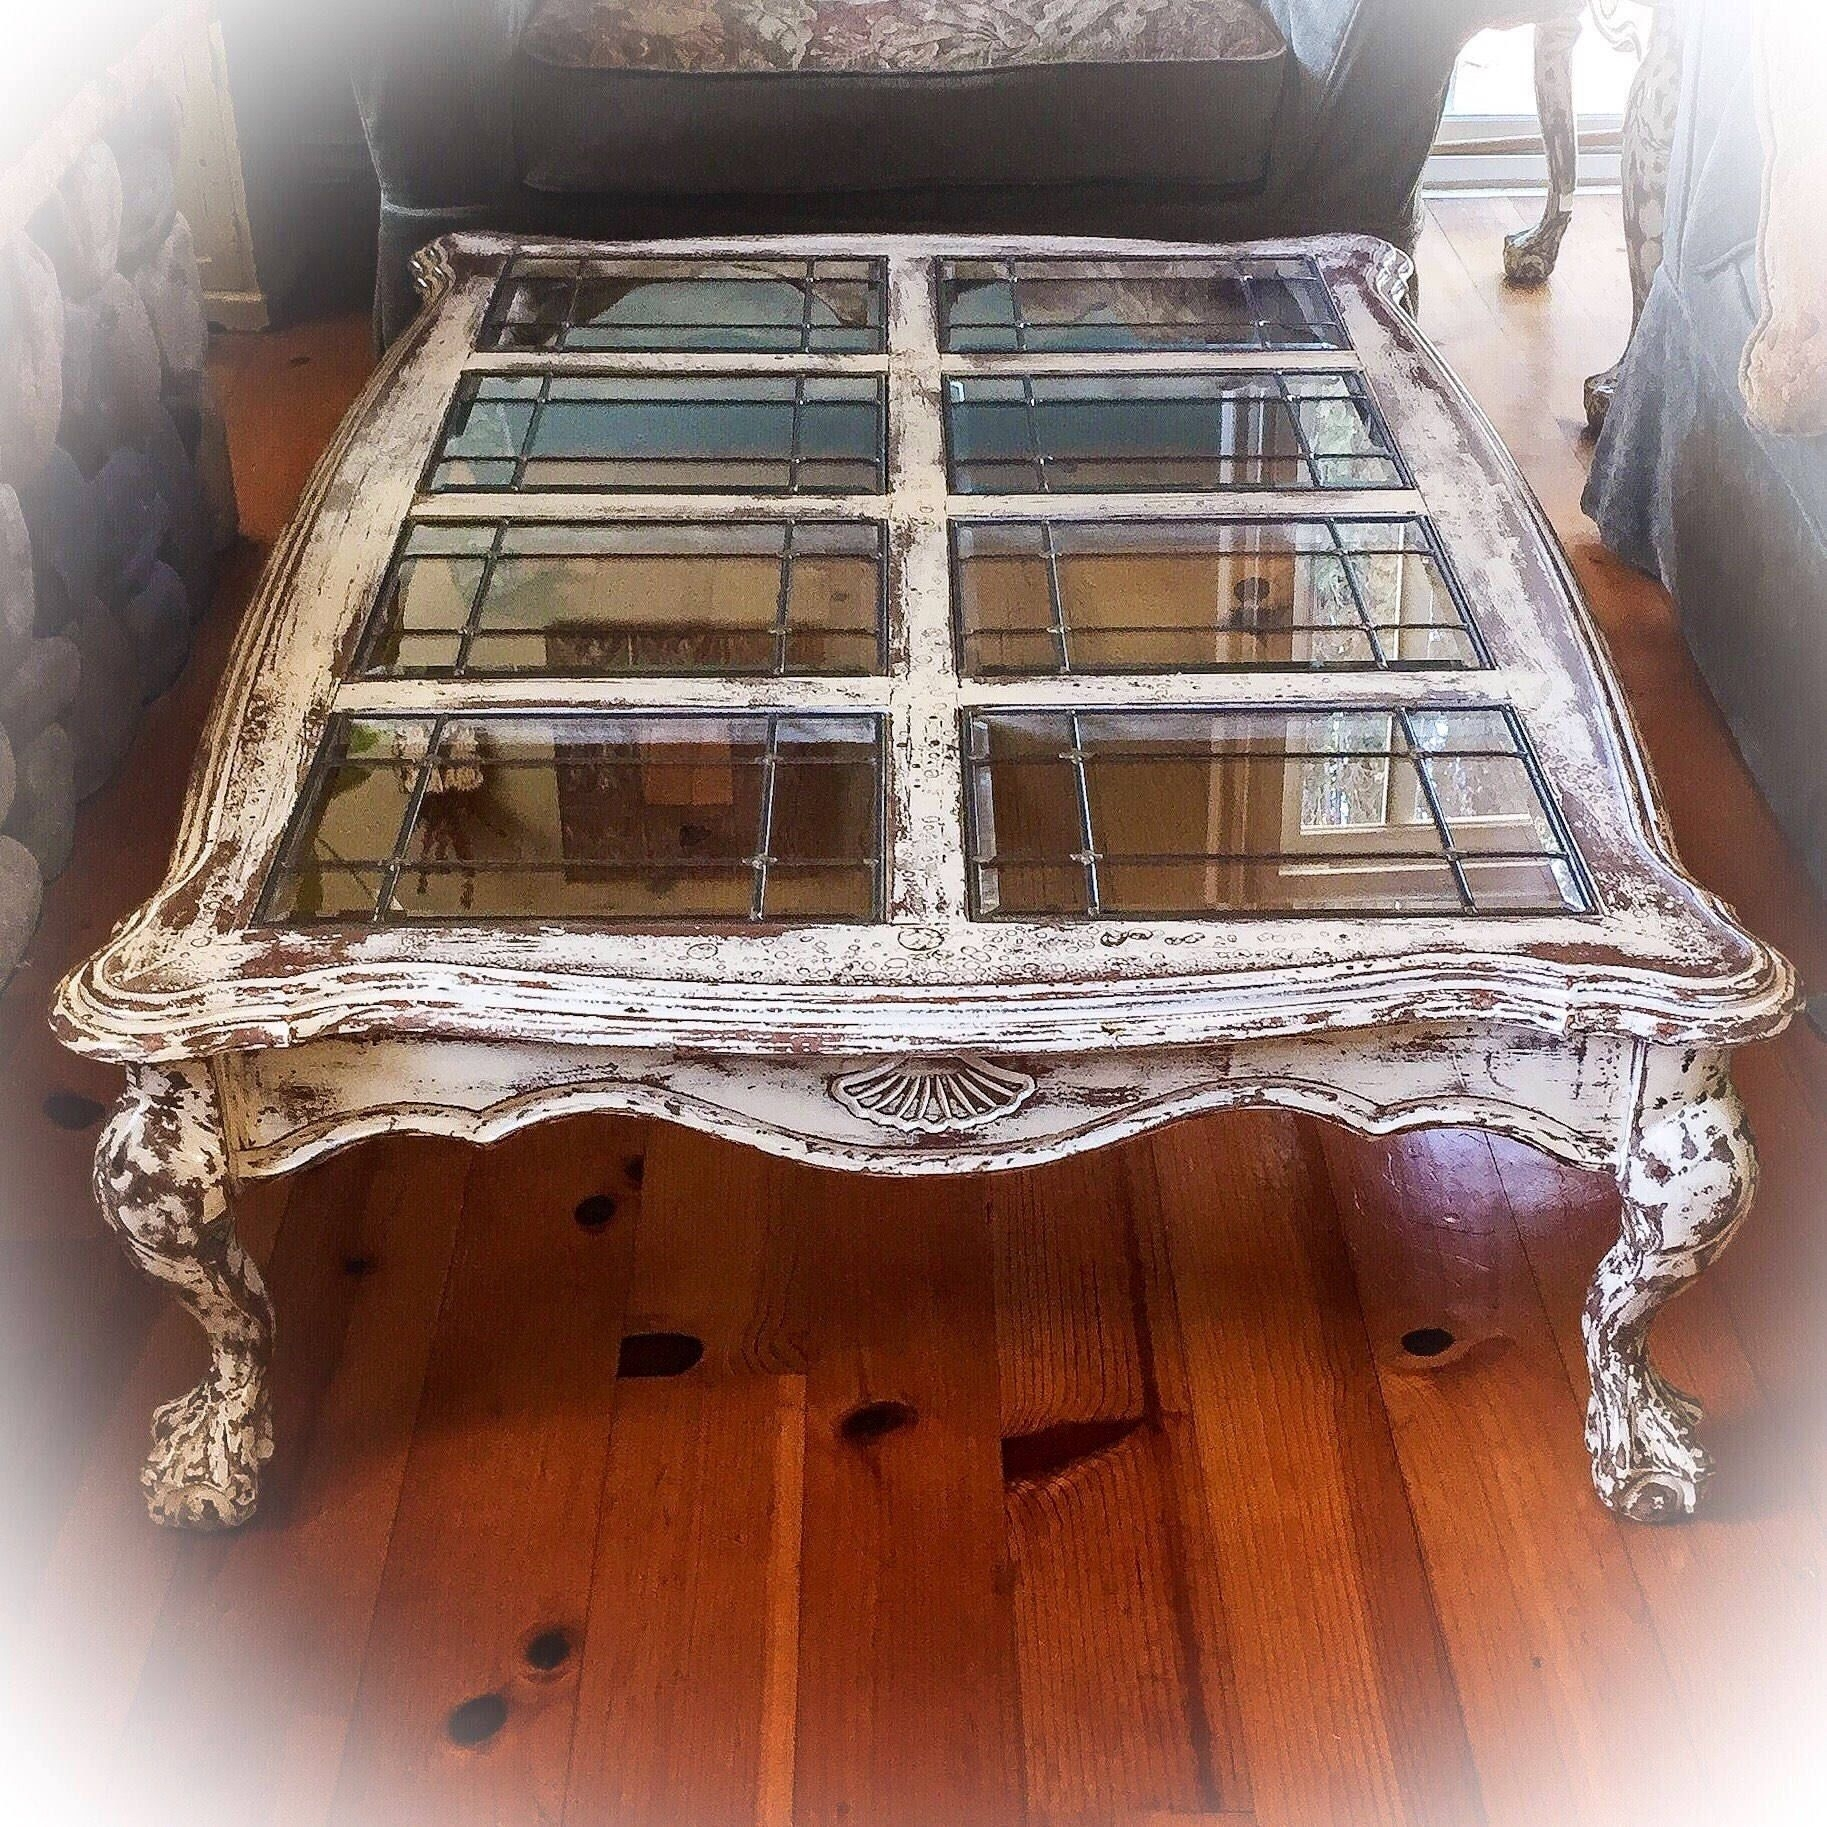 Sold - 5' Farmhouse Coffee Table, Antique White W/ Copper Undertones regarding Large-Scale Chinese Farmhouse Coffee Tables (Image 29 of 30)